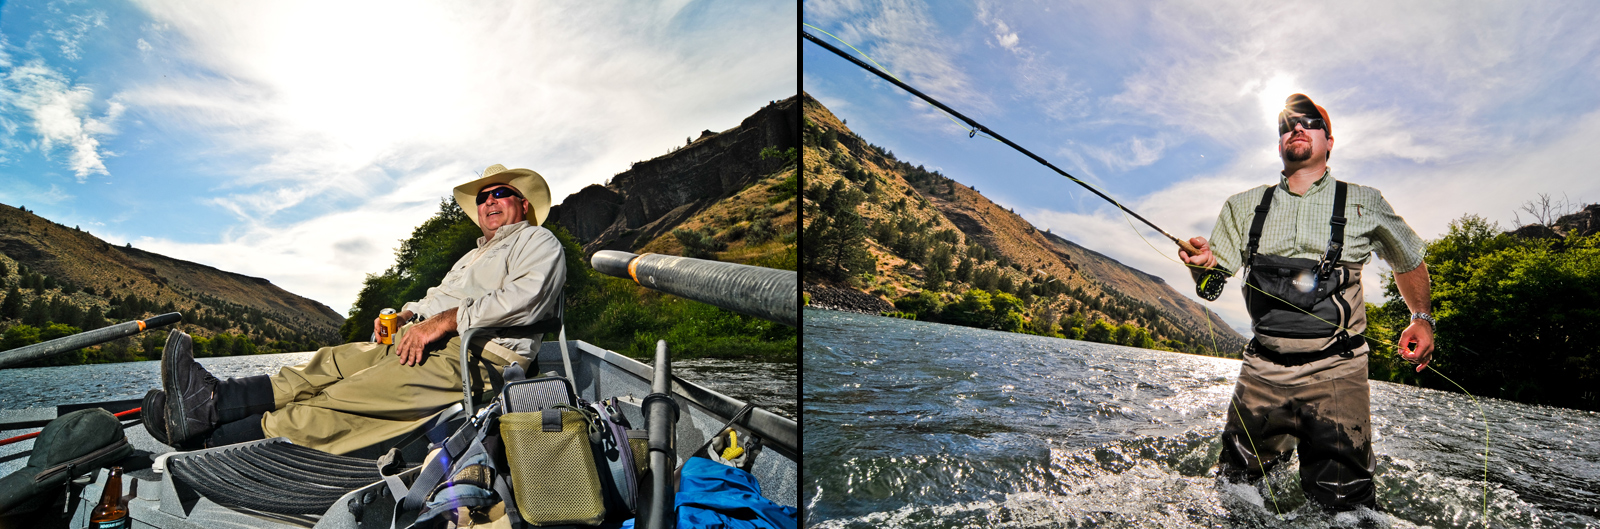 Arian stevens photography warm springs to trout for Central oregon fishing report